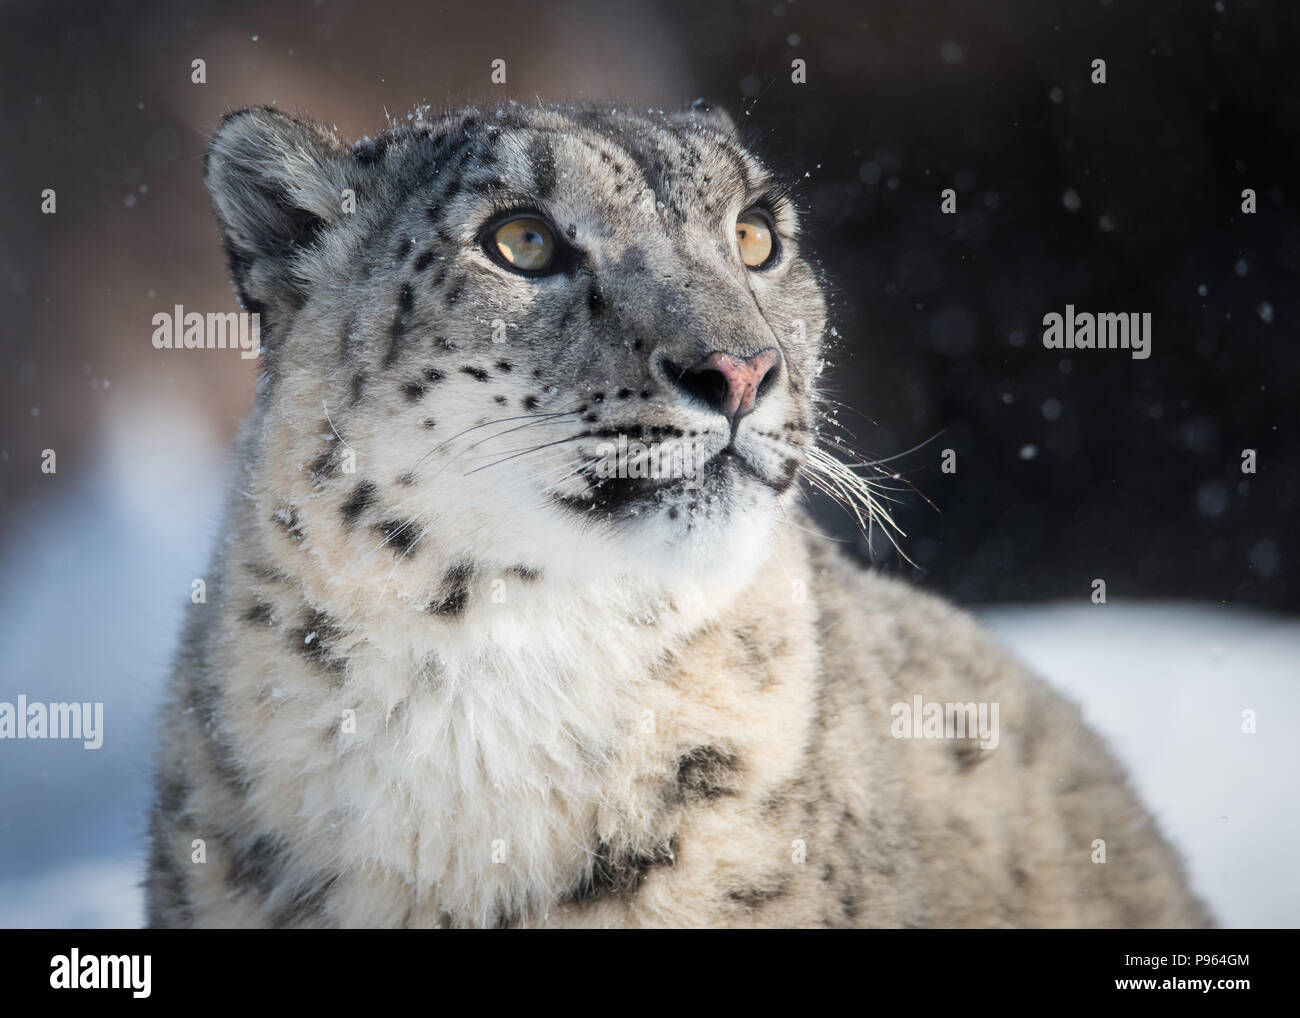 Snow leopard Ena watches the snow fall at The Toronto Zoo, where she is part of a successful captive breeding program for this vulnerable species. - Stock Image